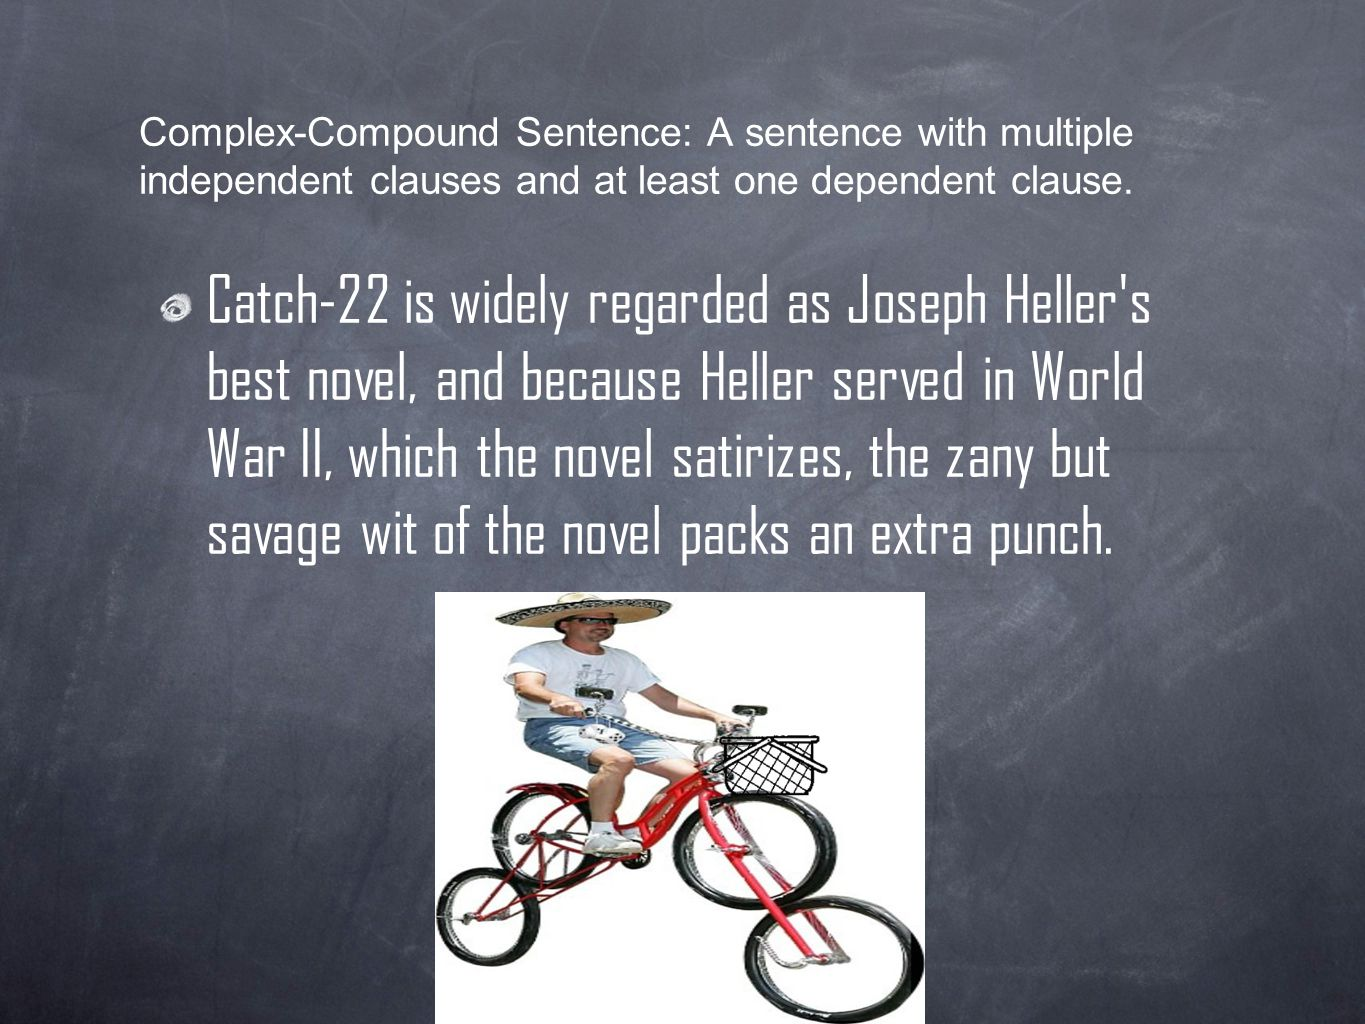 Complex-Compound Sentence: A sentence with multiple independent clauses and at least one dependent clause.